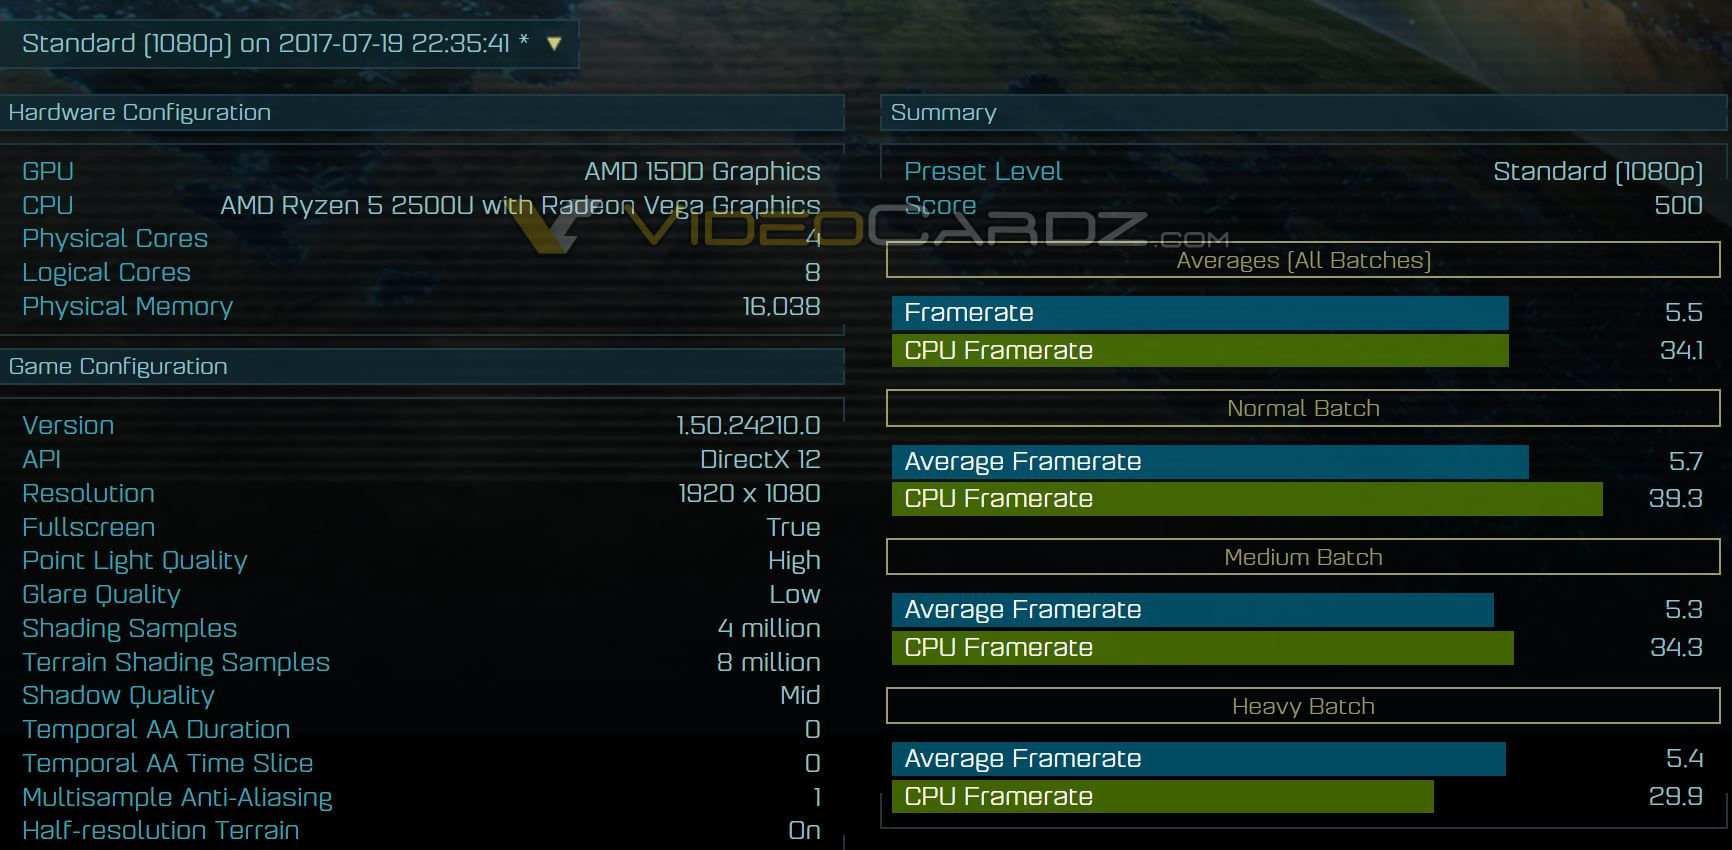 AMD Ryzen 5 2500U in Benchmark